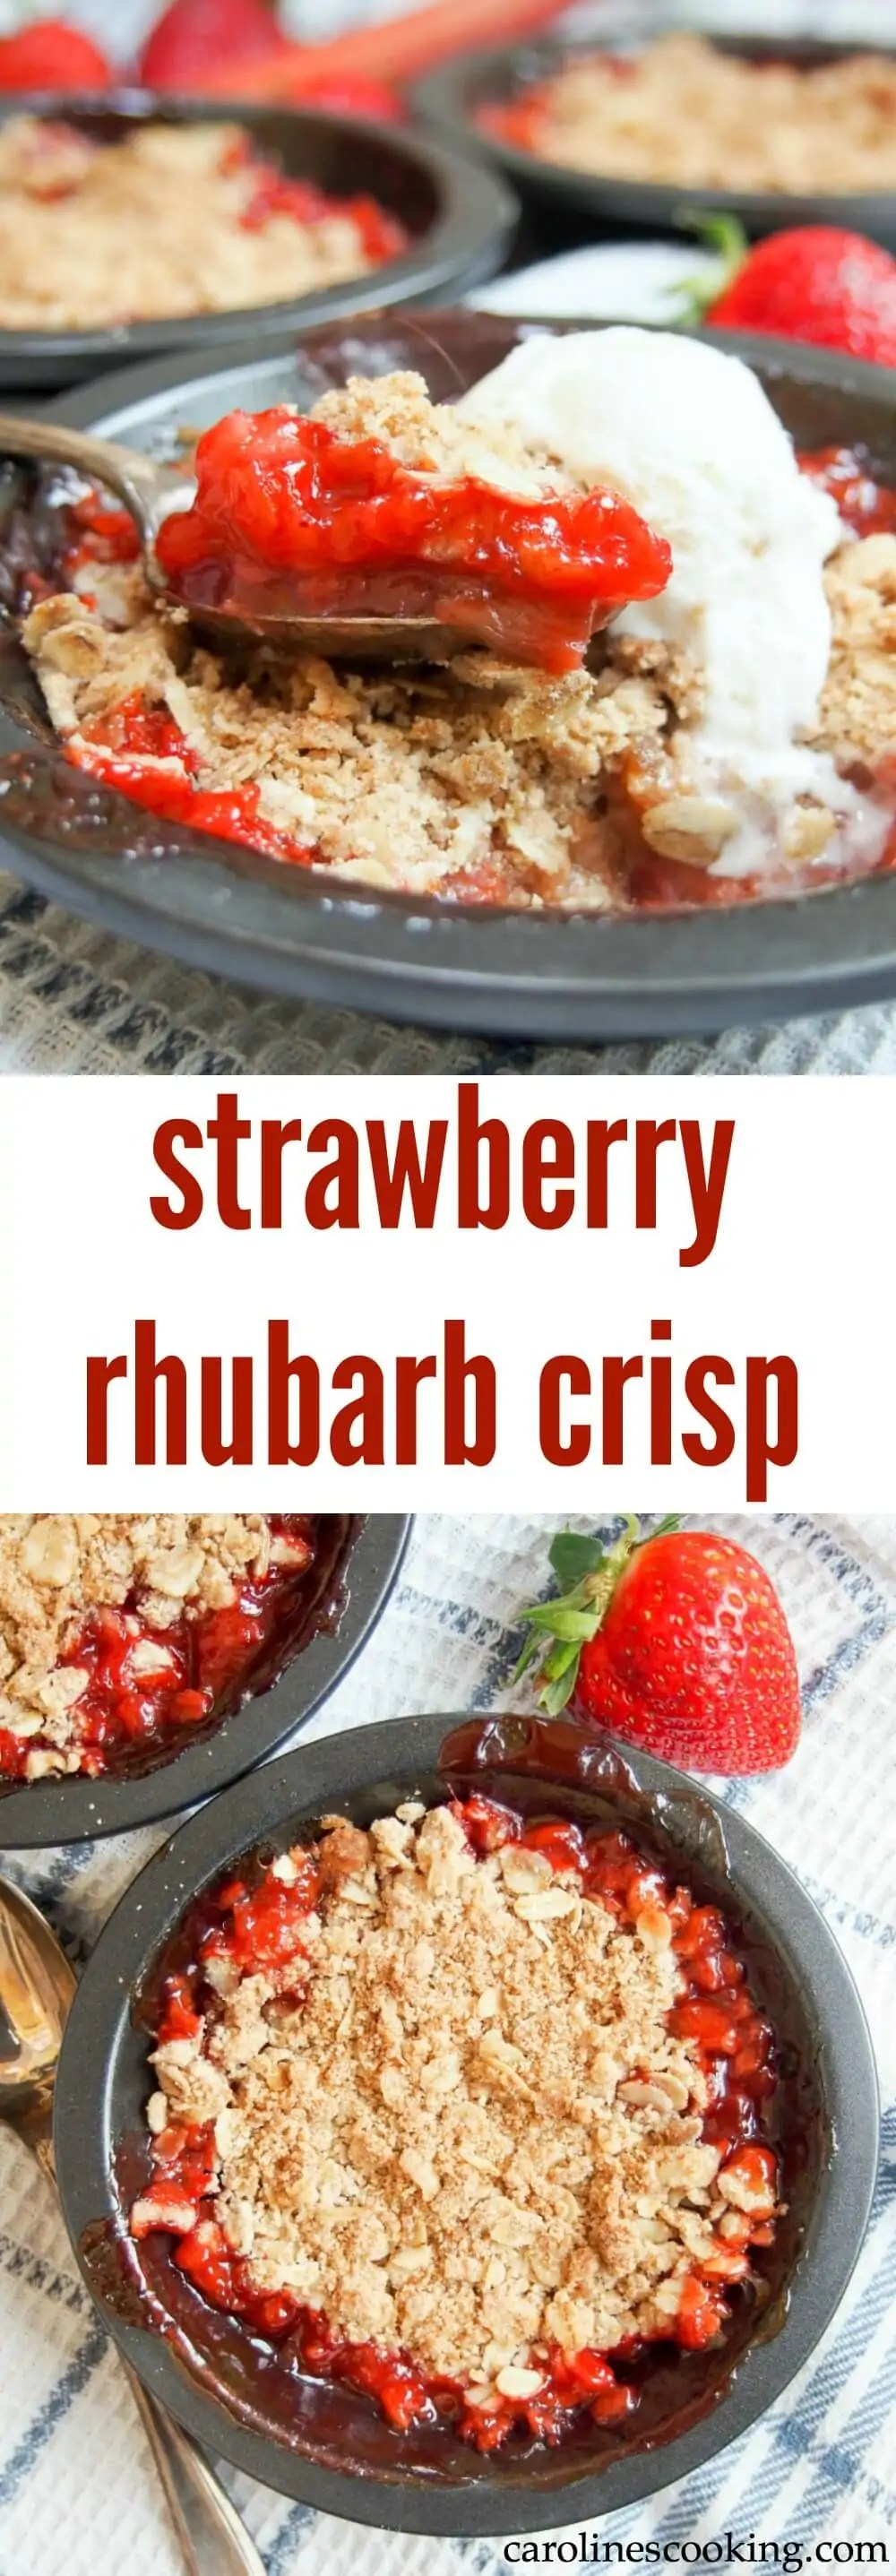 This strawberry rhubarb crisp is a great easy dessert. Deliciously fruity, with bites of tart rhubarb and a sweet, crisp topping. So good! Easily made gluten free